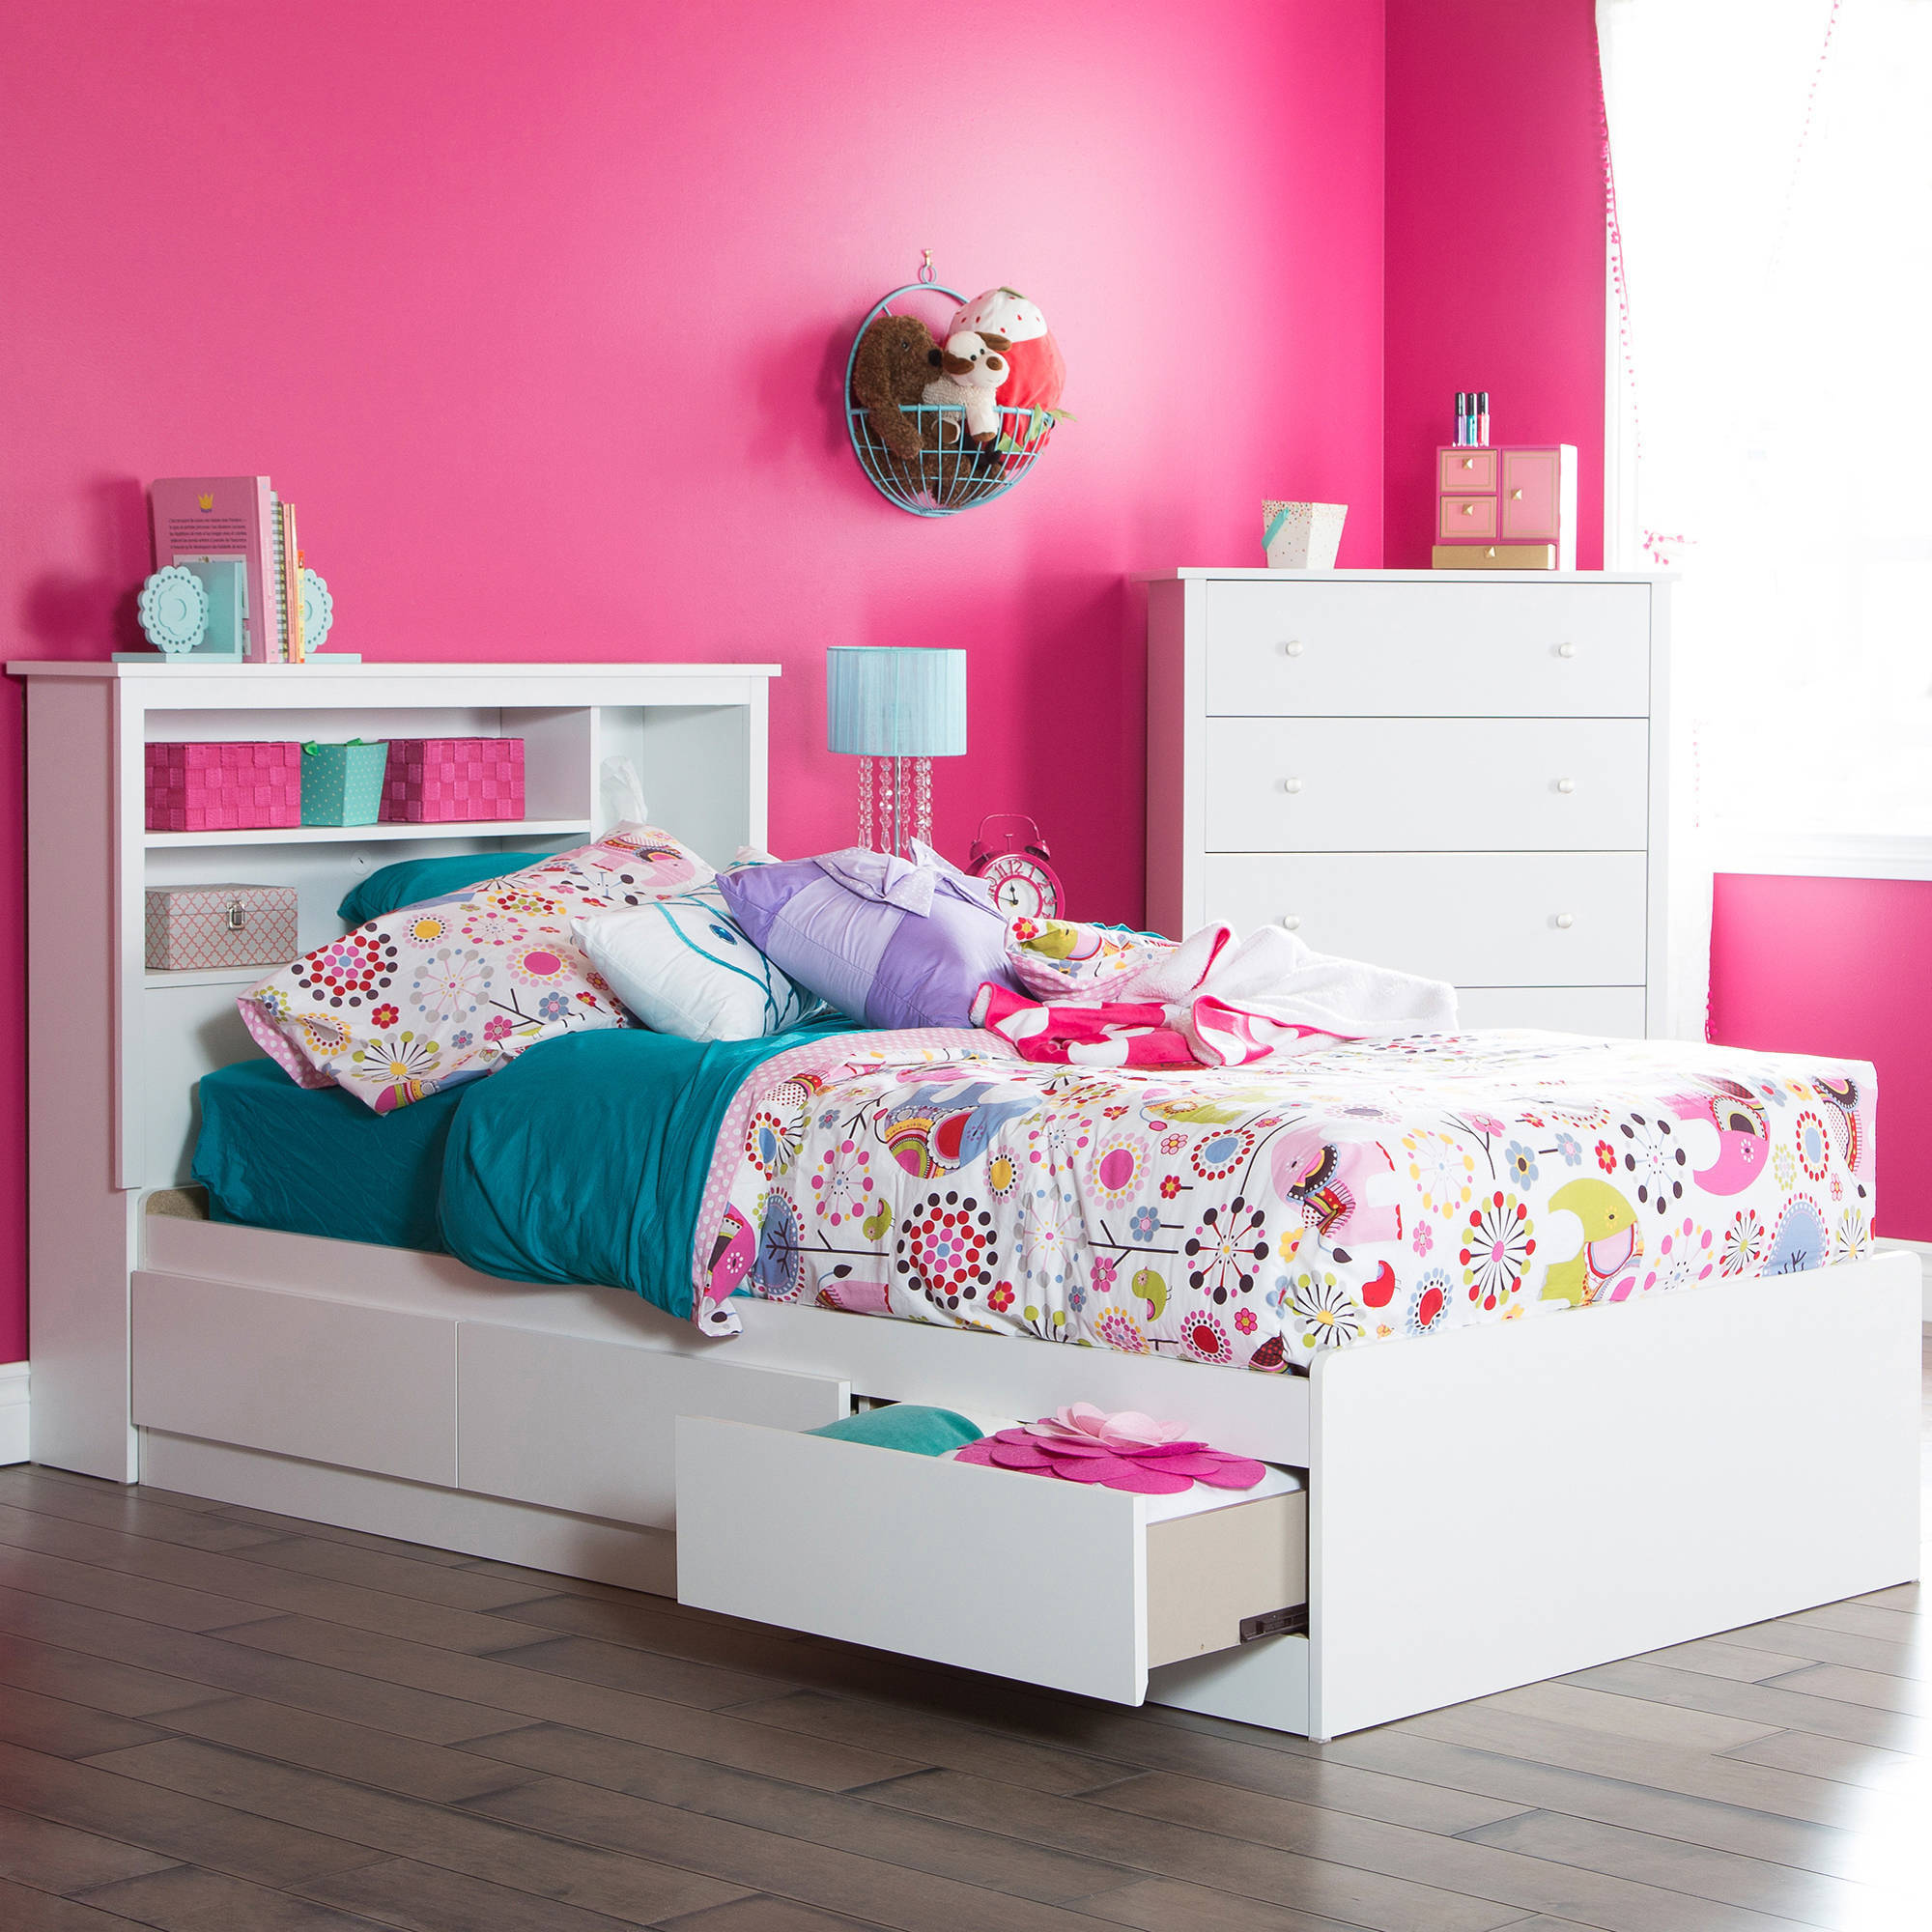 South Shore Vito Twin Mates Bed with 3 Drawers, Multiple Finishes